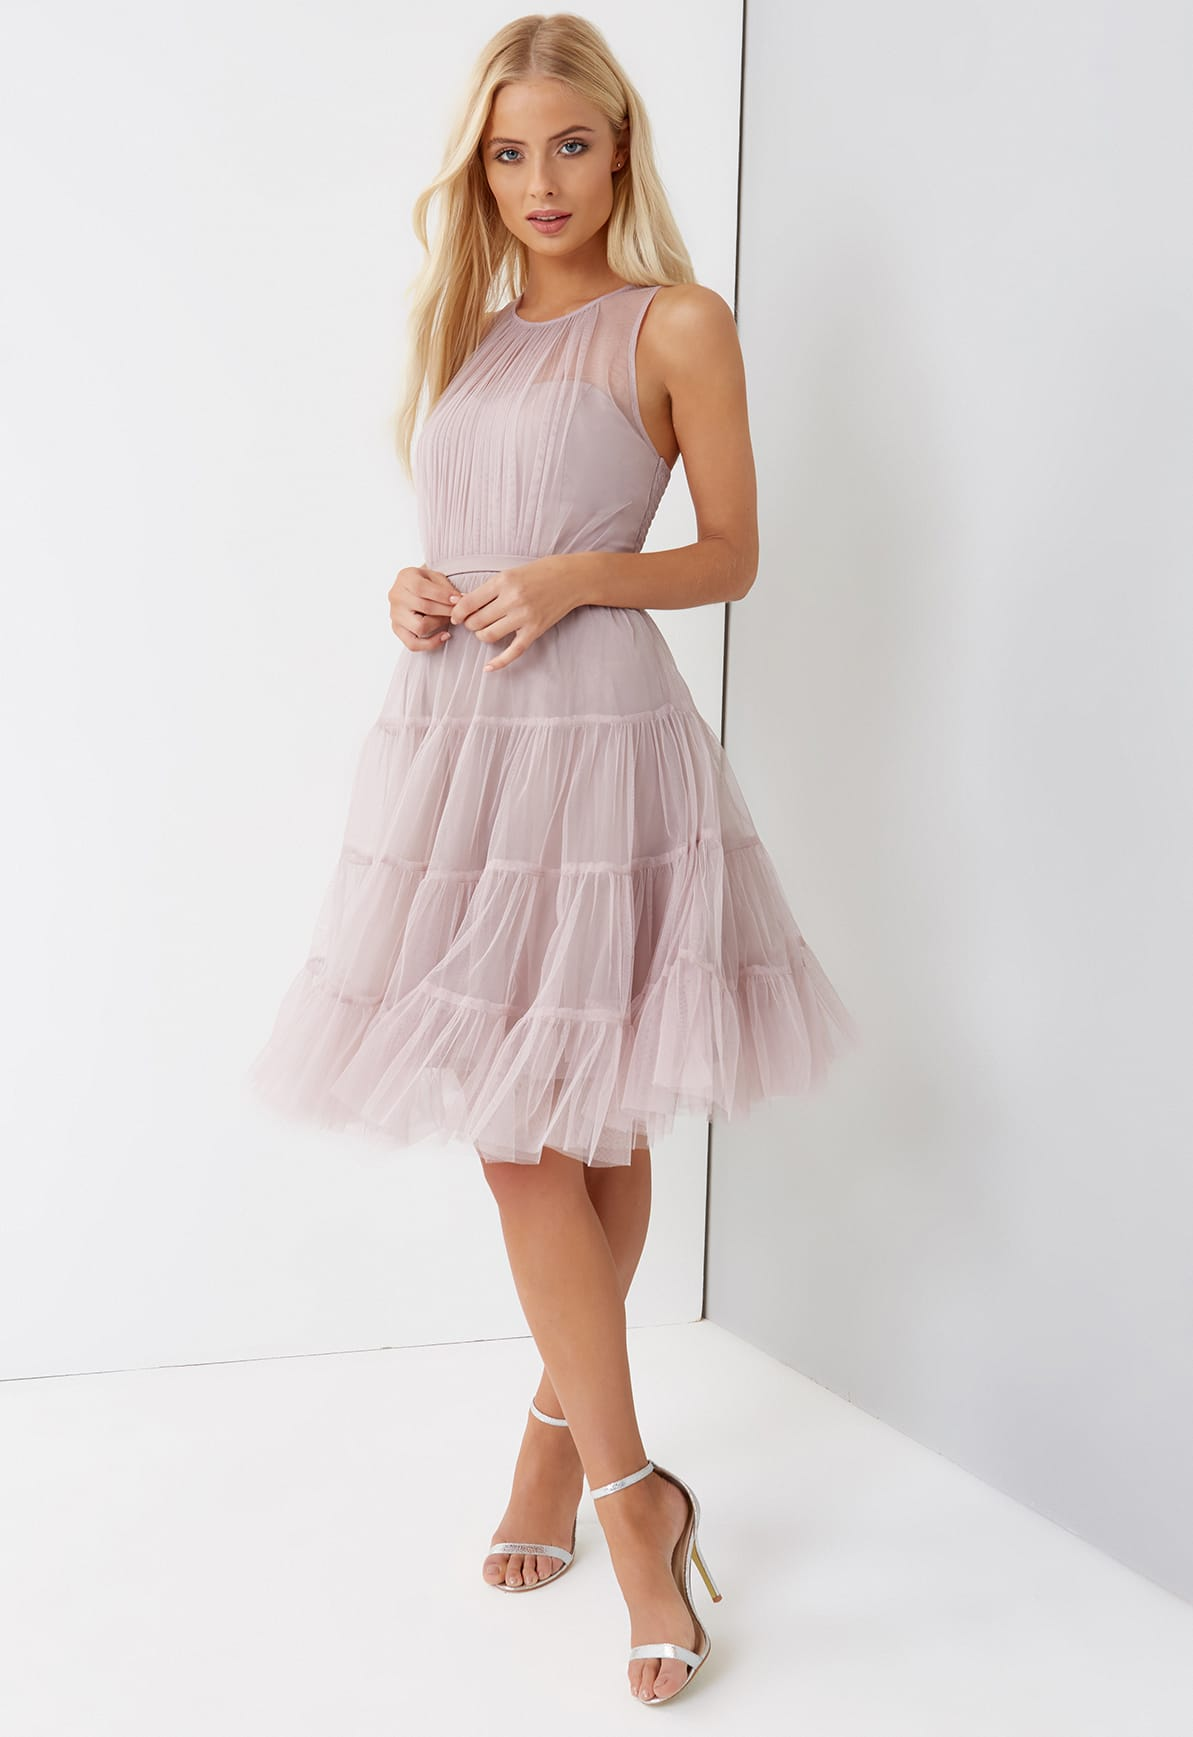 Try Tulle For Prom This Year